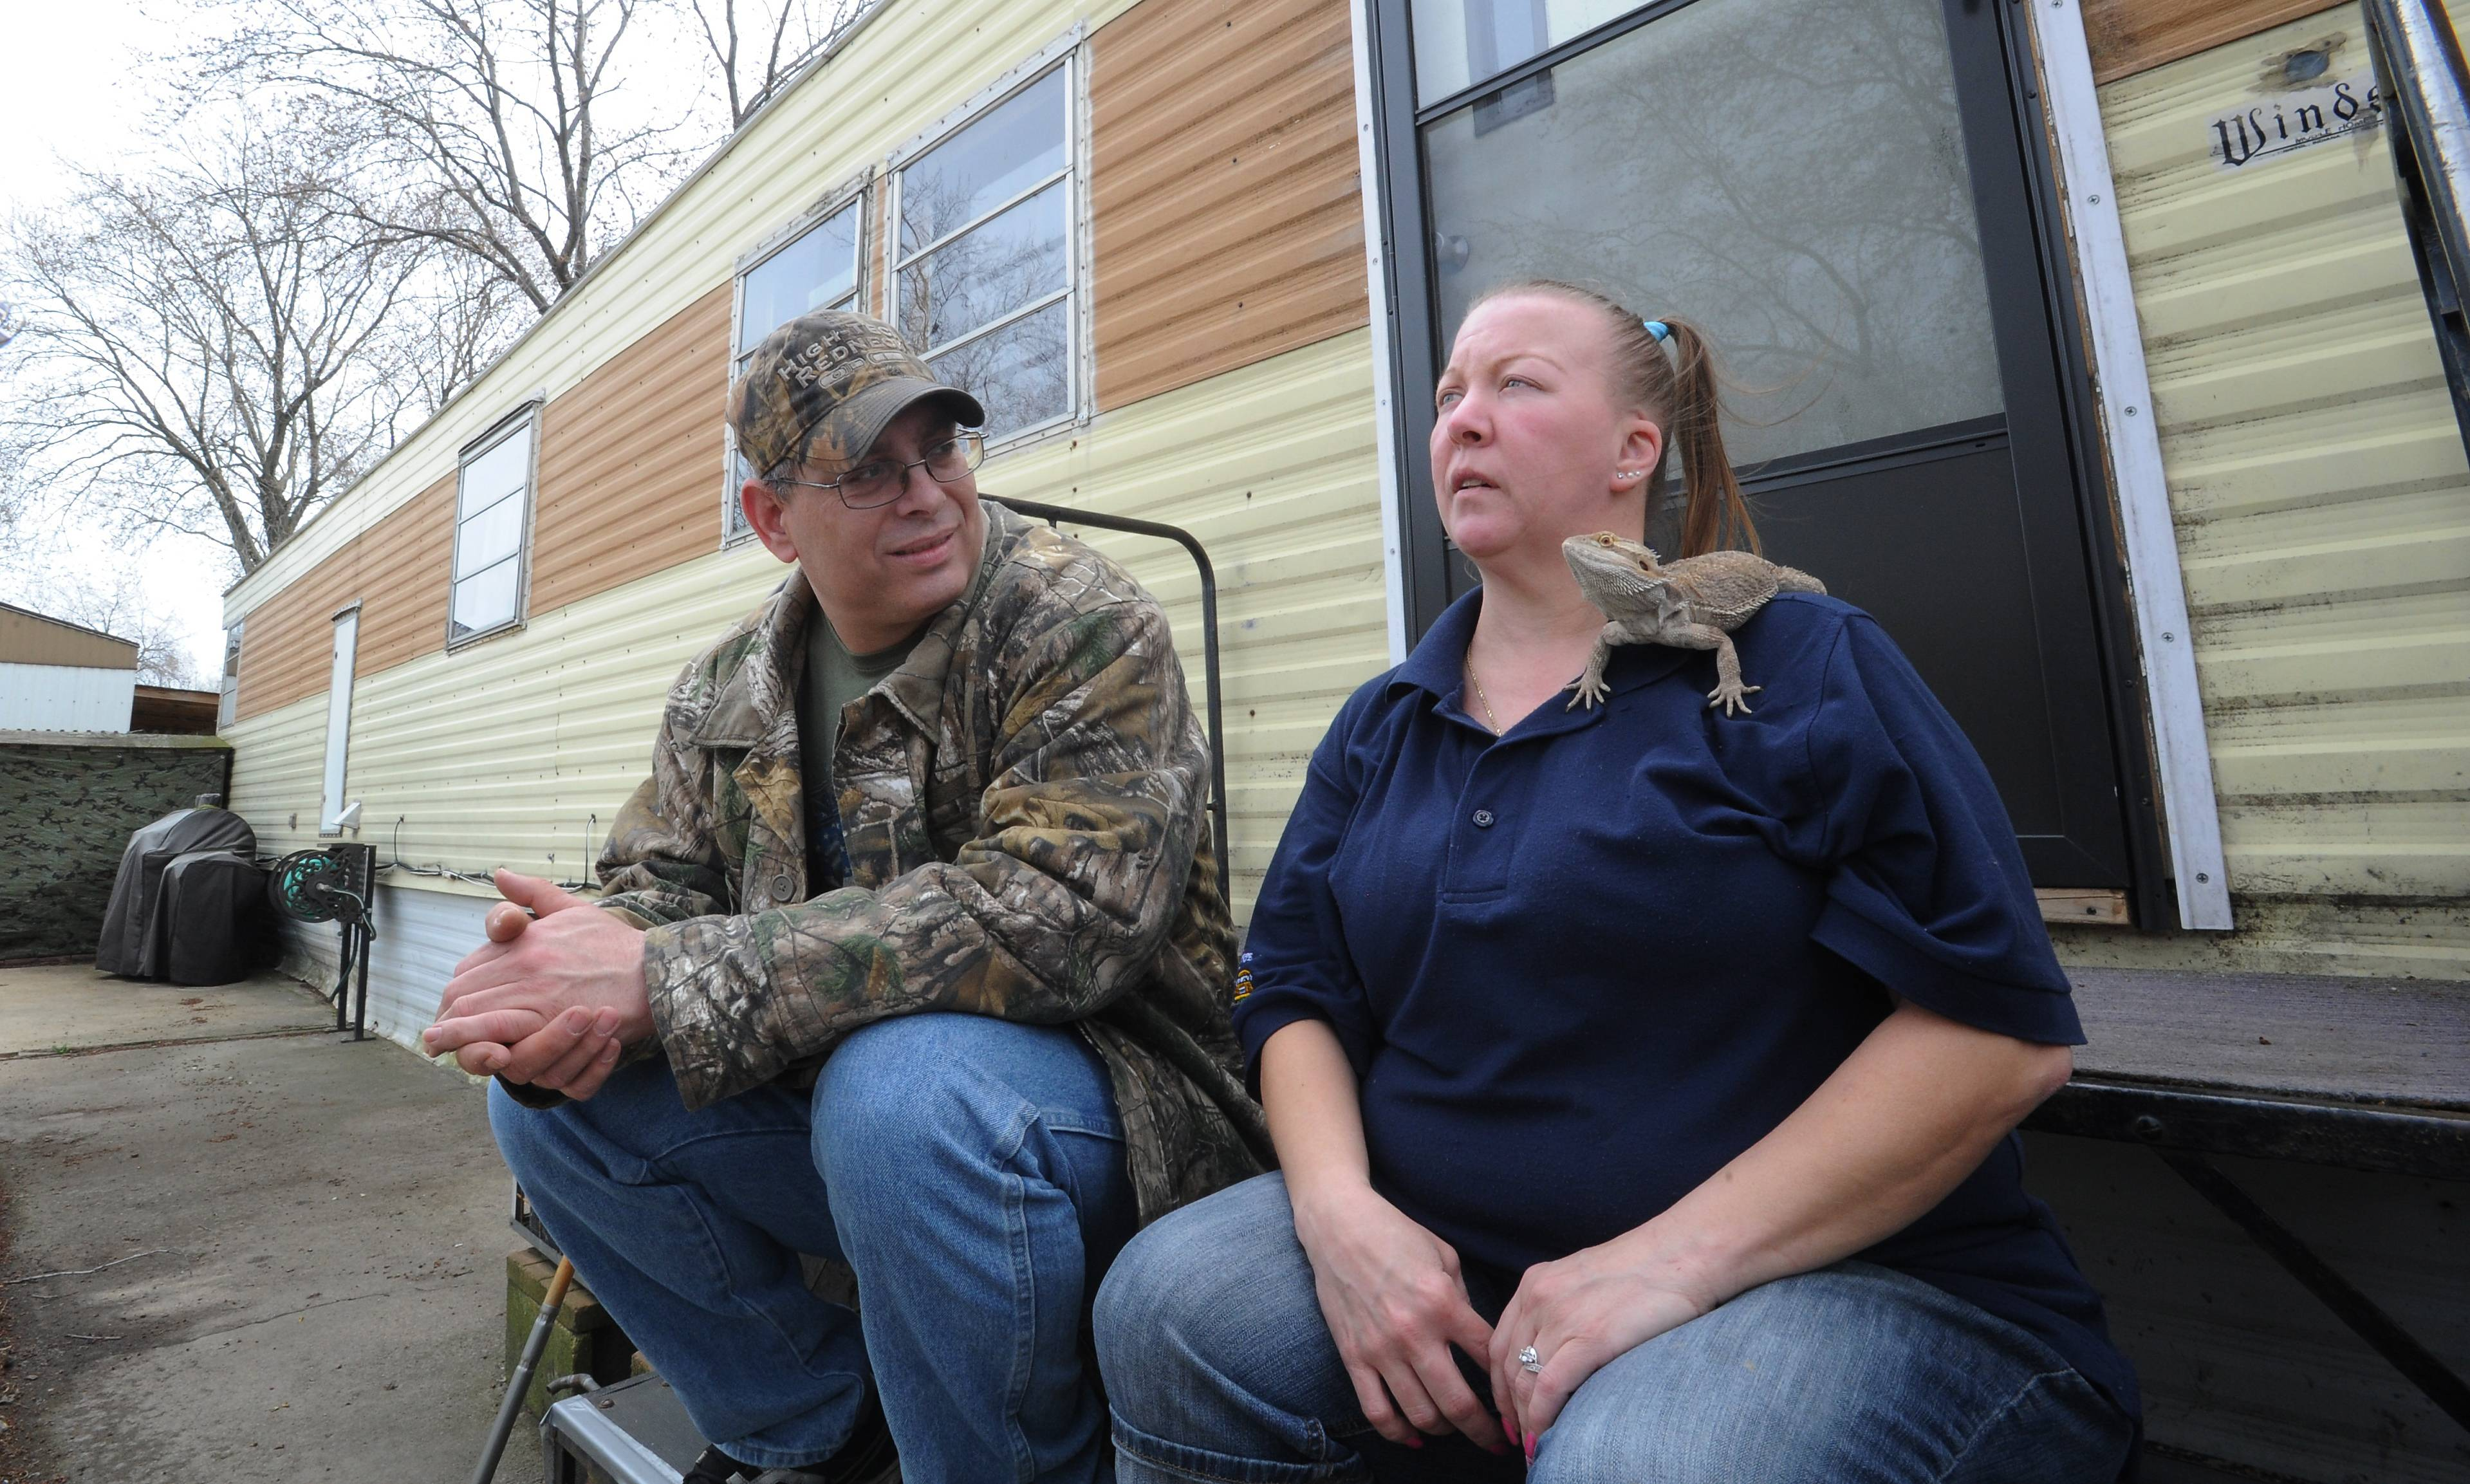 The Oasis Mobile Home Park in Des Plaines has no storm shelter on the property. Clinton and Laurie Brookshire said they would stay put with their bearded dragon, Spike, in their mobile home.